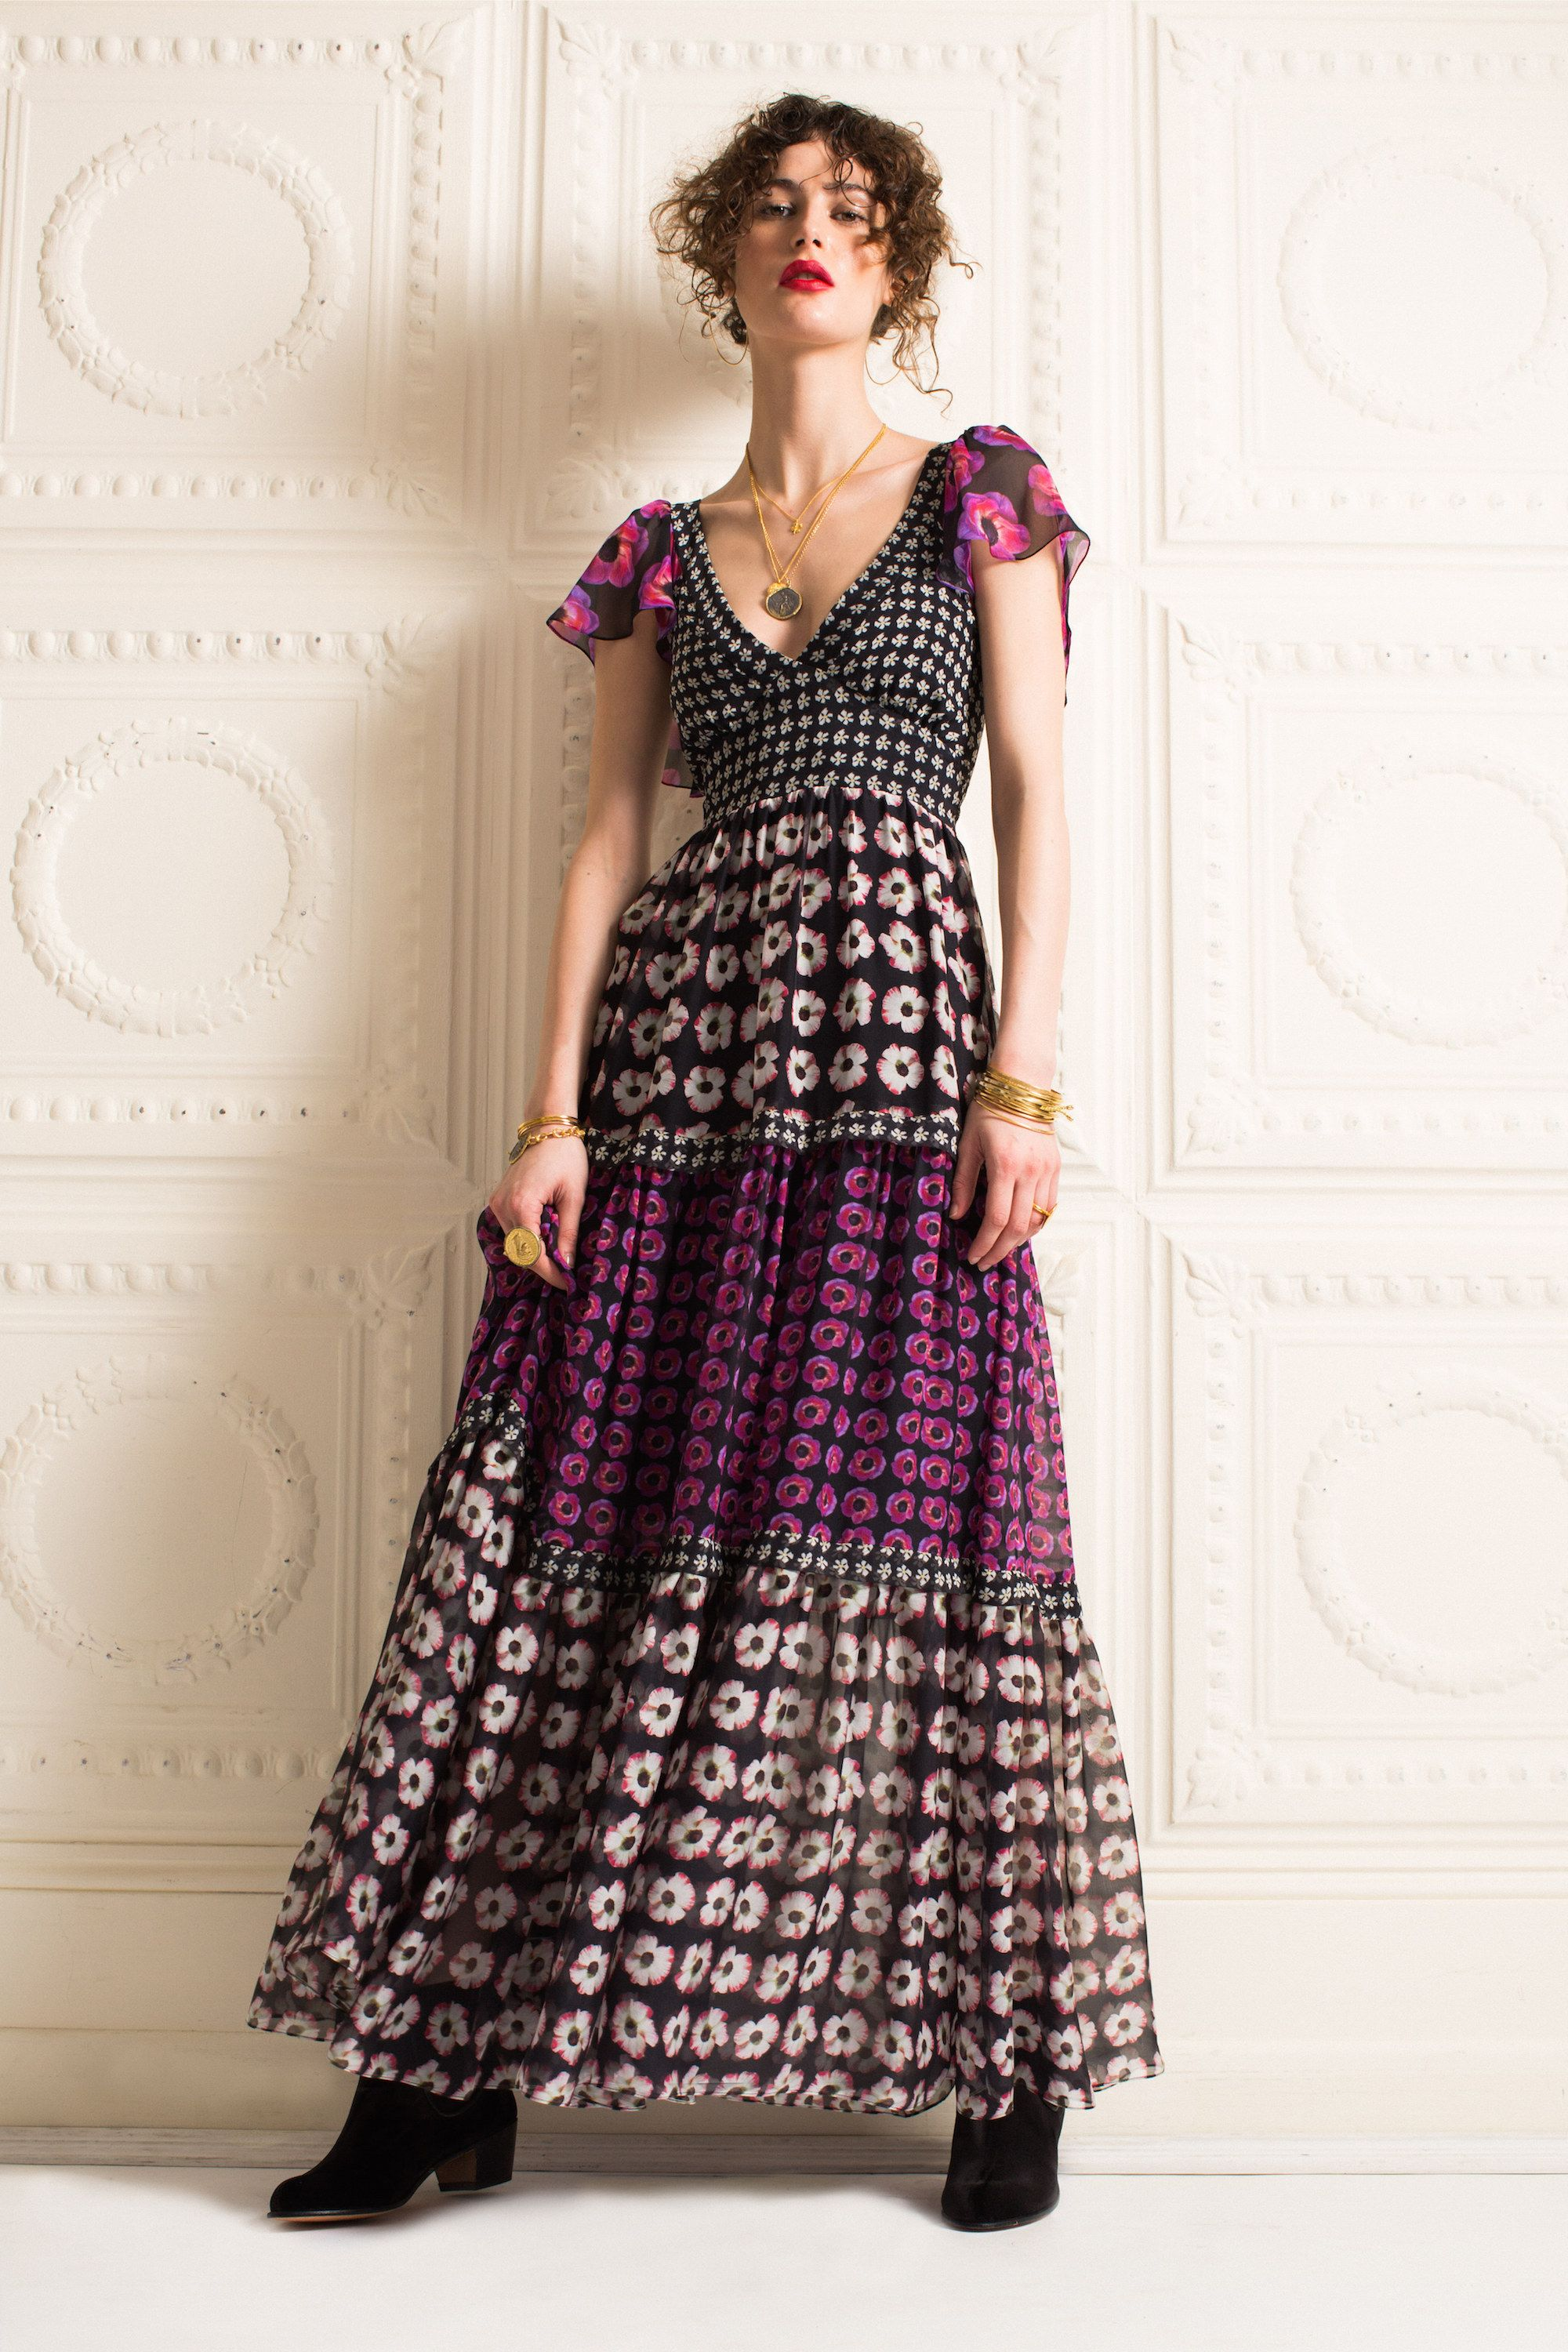 Temperley London Pre-Fall 2016 Fashion Show  http://www.vogue.com/fashion-shows/pre-fall-2016/temperley-london/slideshow/collection#14